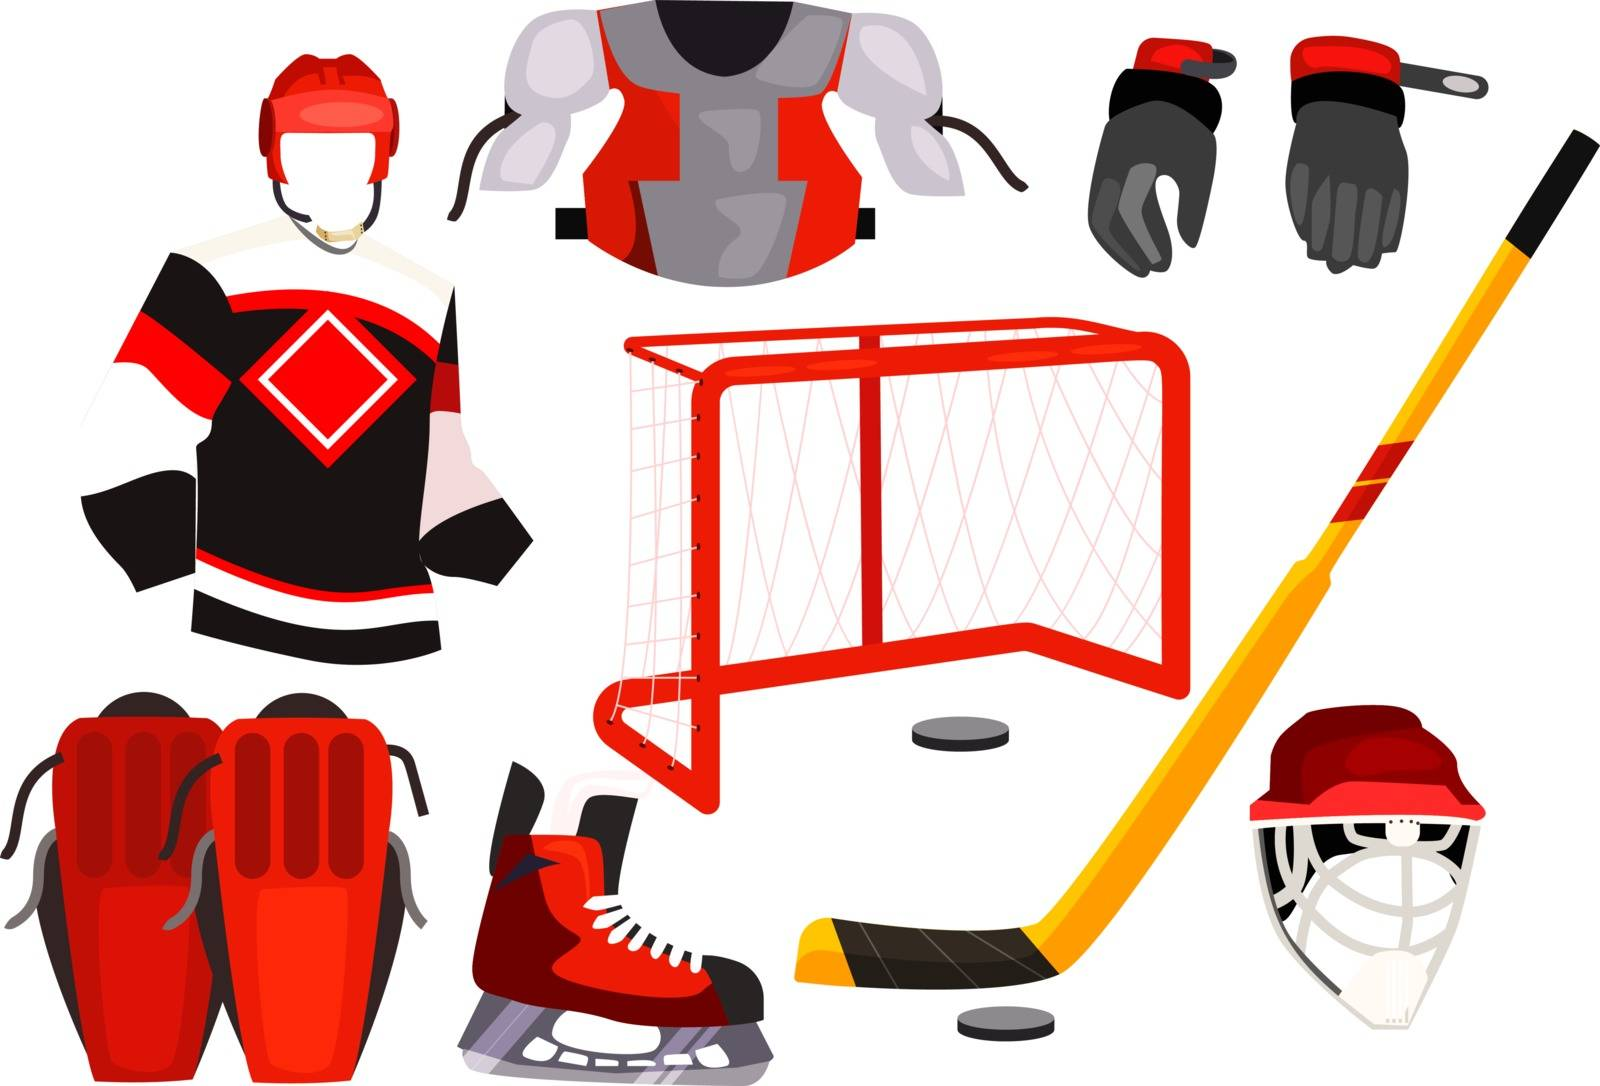 Hockey equipment icons. Simple icons collection on white background. Helmet, skates, puck. Hockey concept. Illustrations can be used for topics like hockey, sport, winter